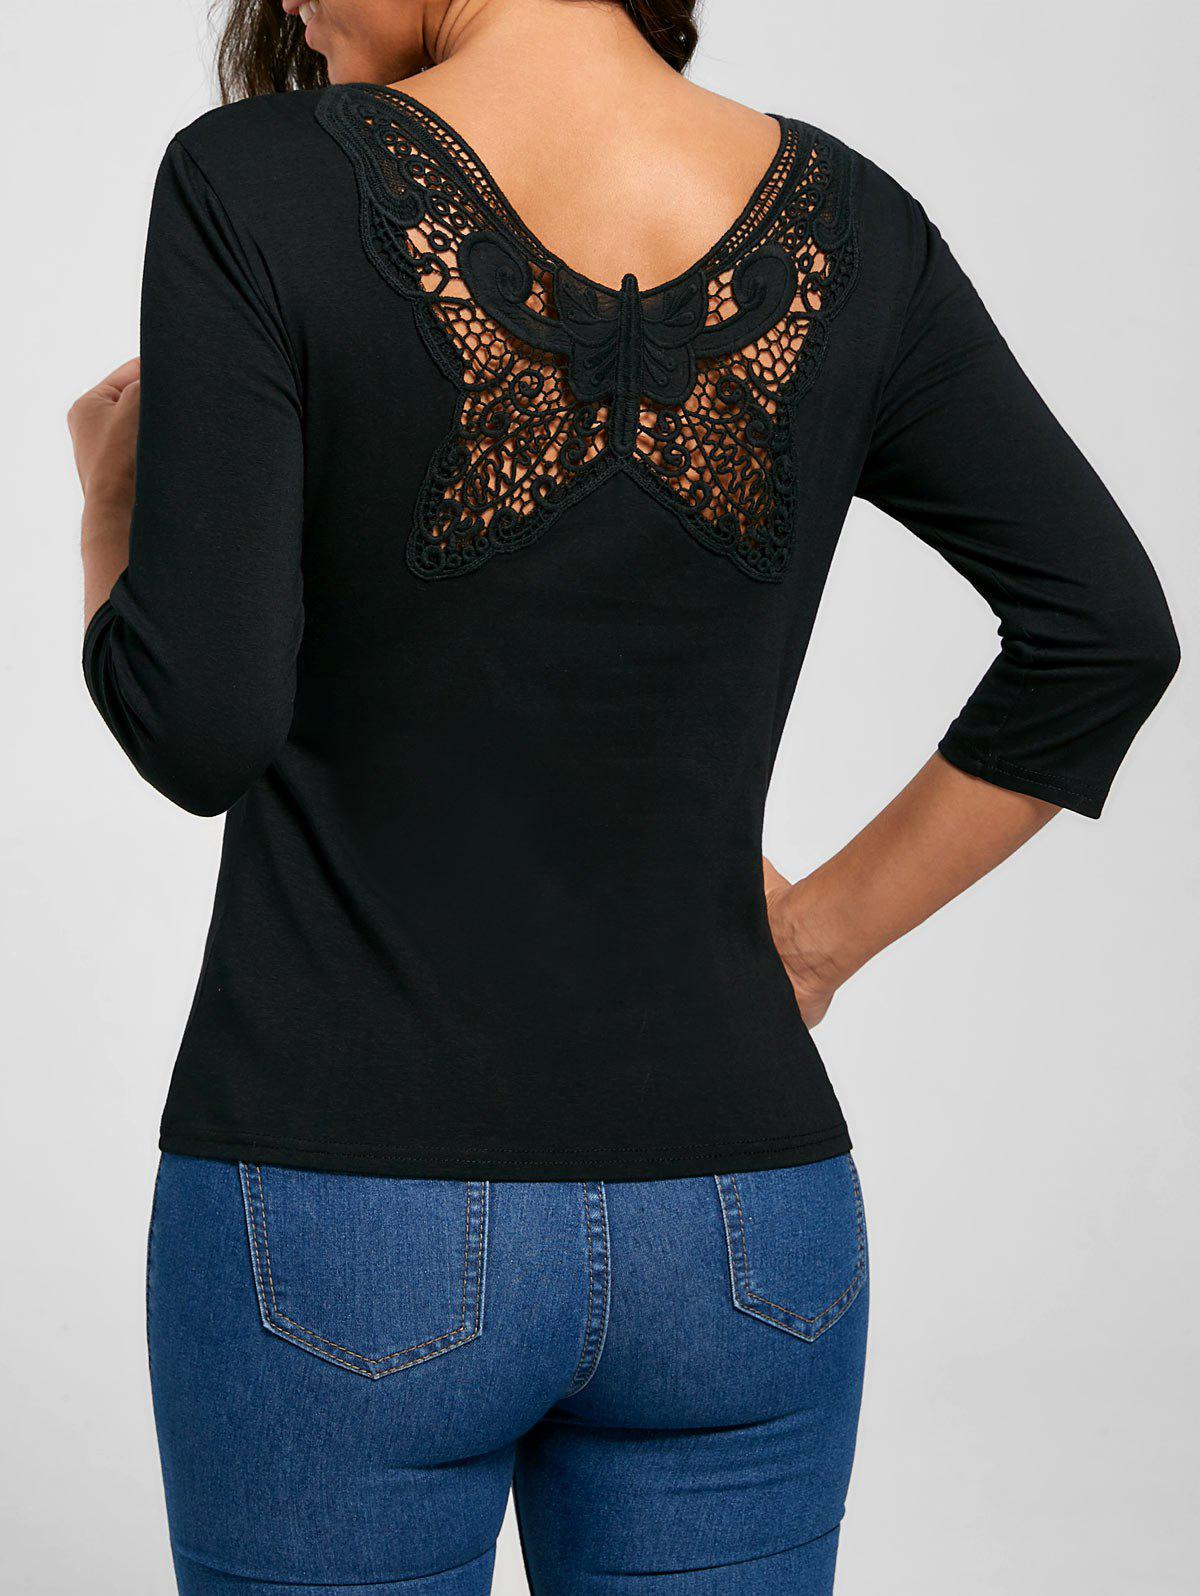 2018 Scoop Neck Butterfly Lace Back T Shirt Black S In